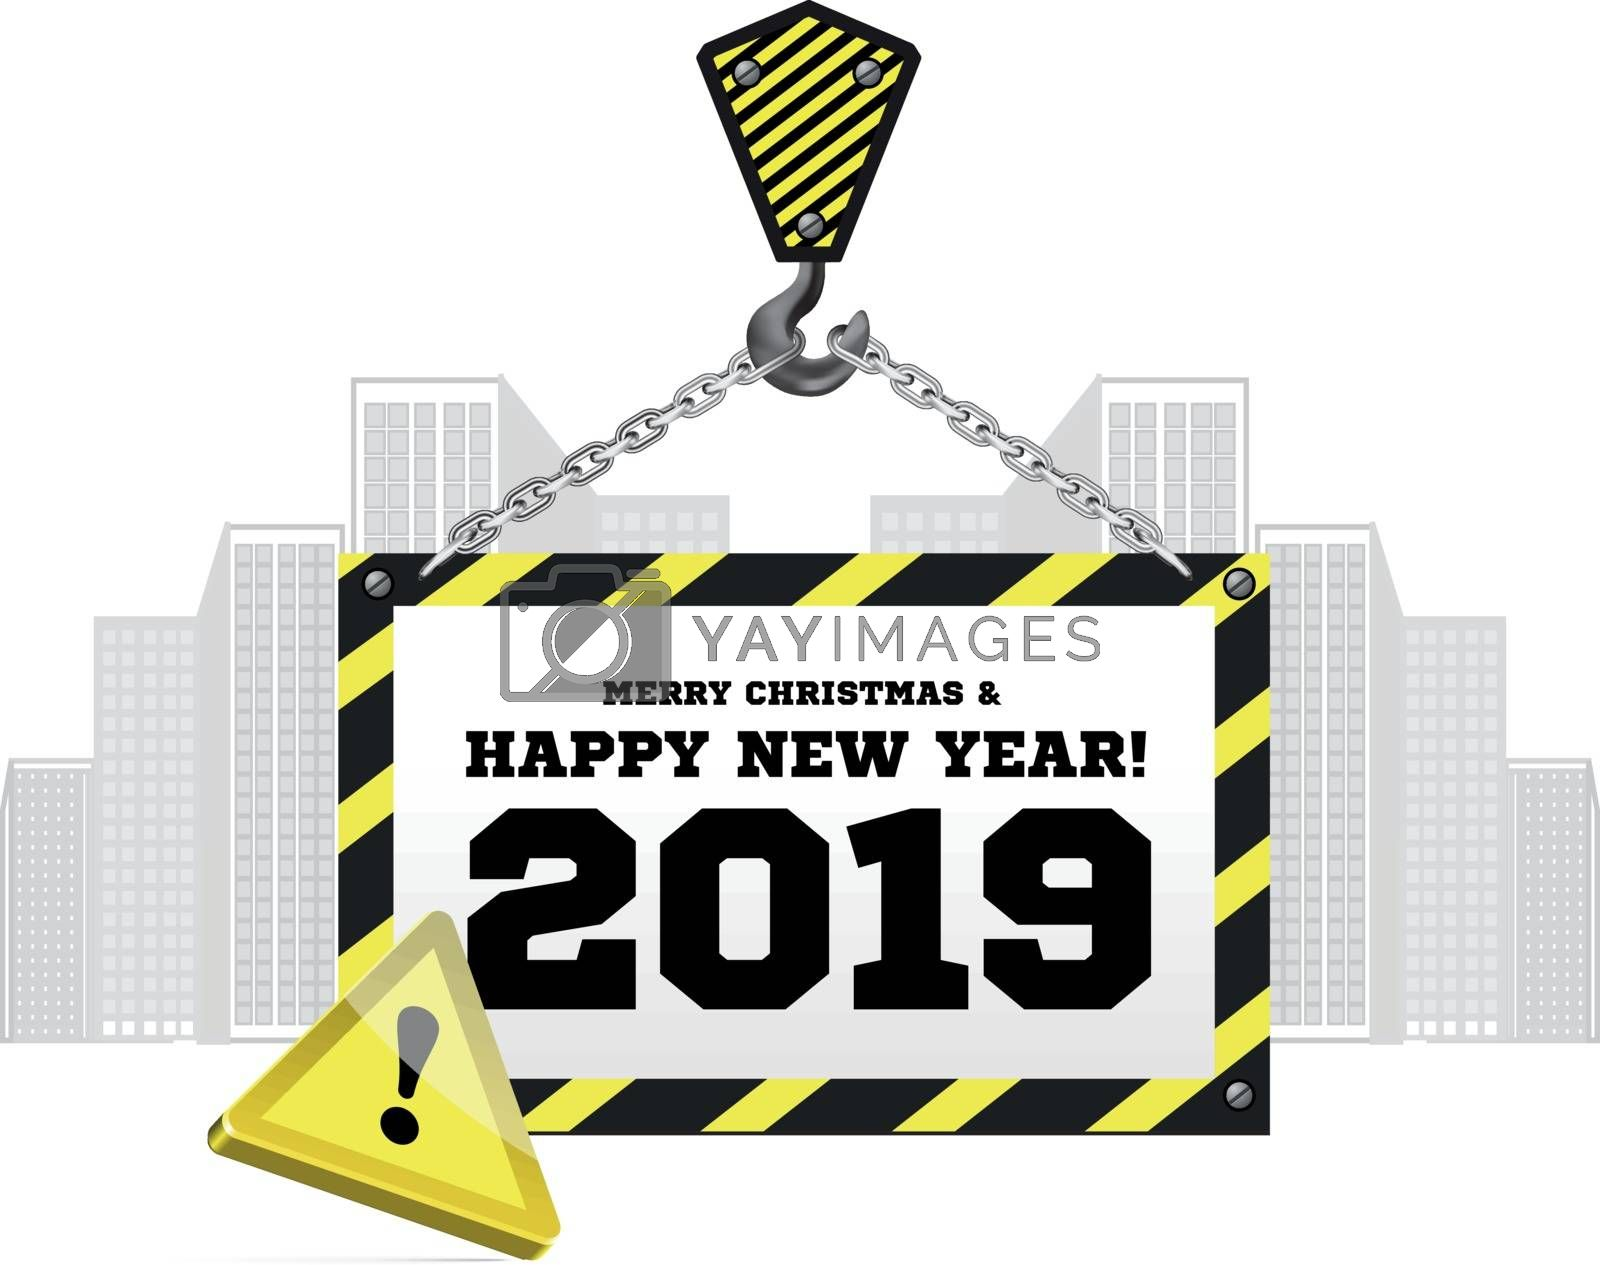 Congratulations to the New Year on the background of a construction crane. Vector illustration